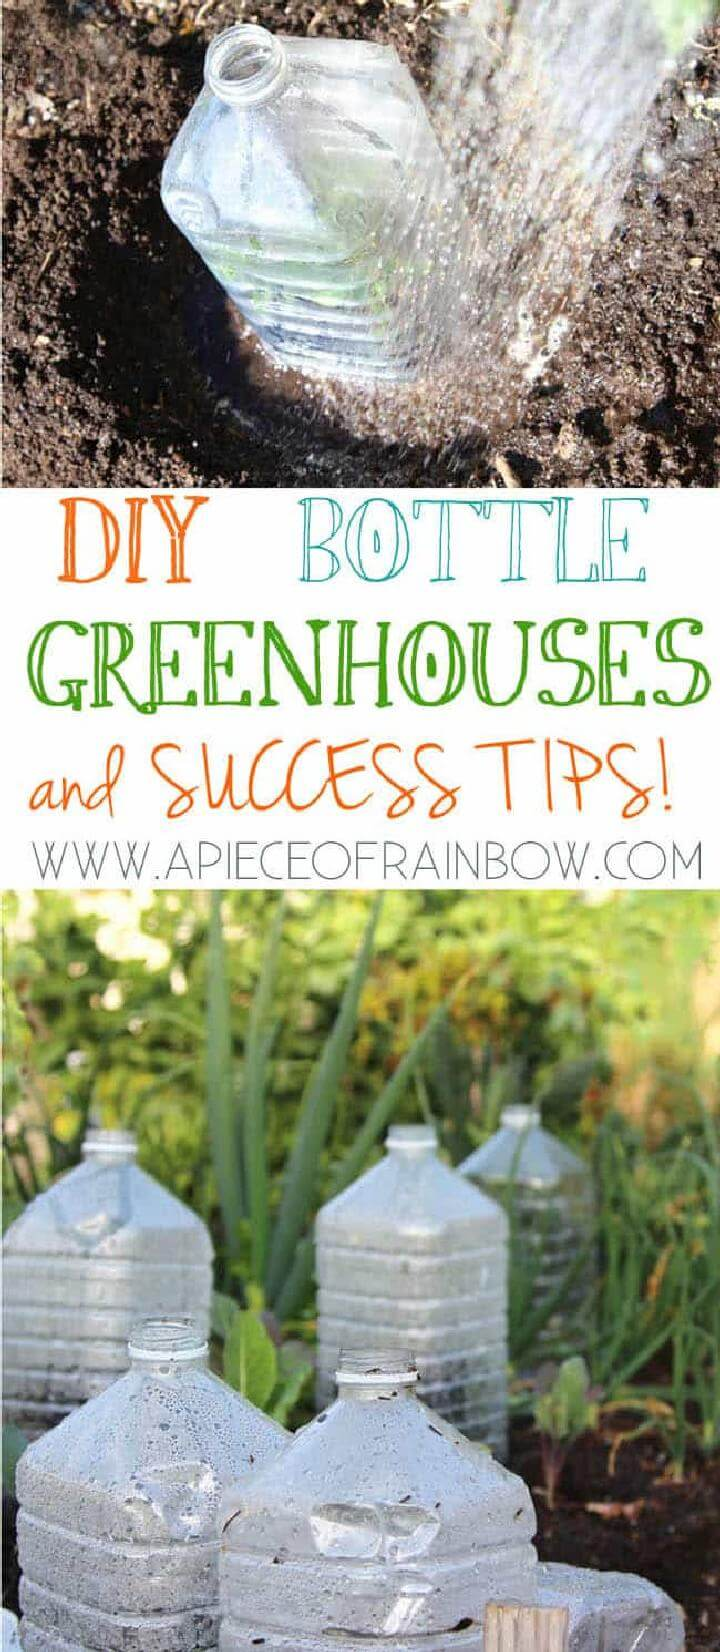 DIY Plastic Bottle Greenhouse